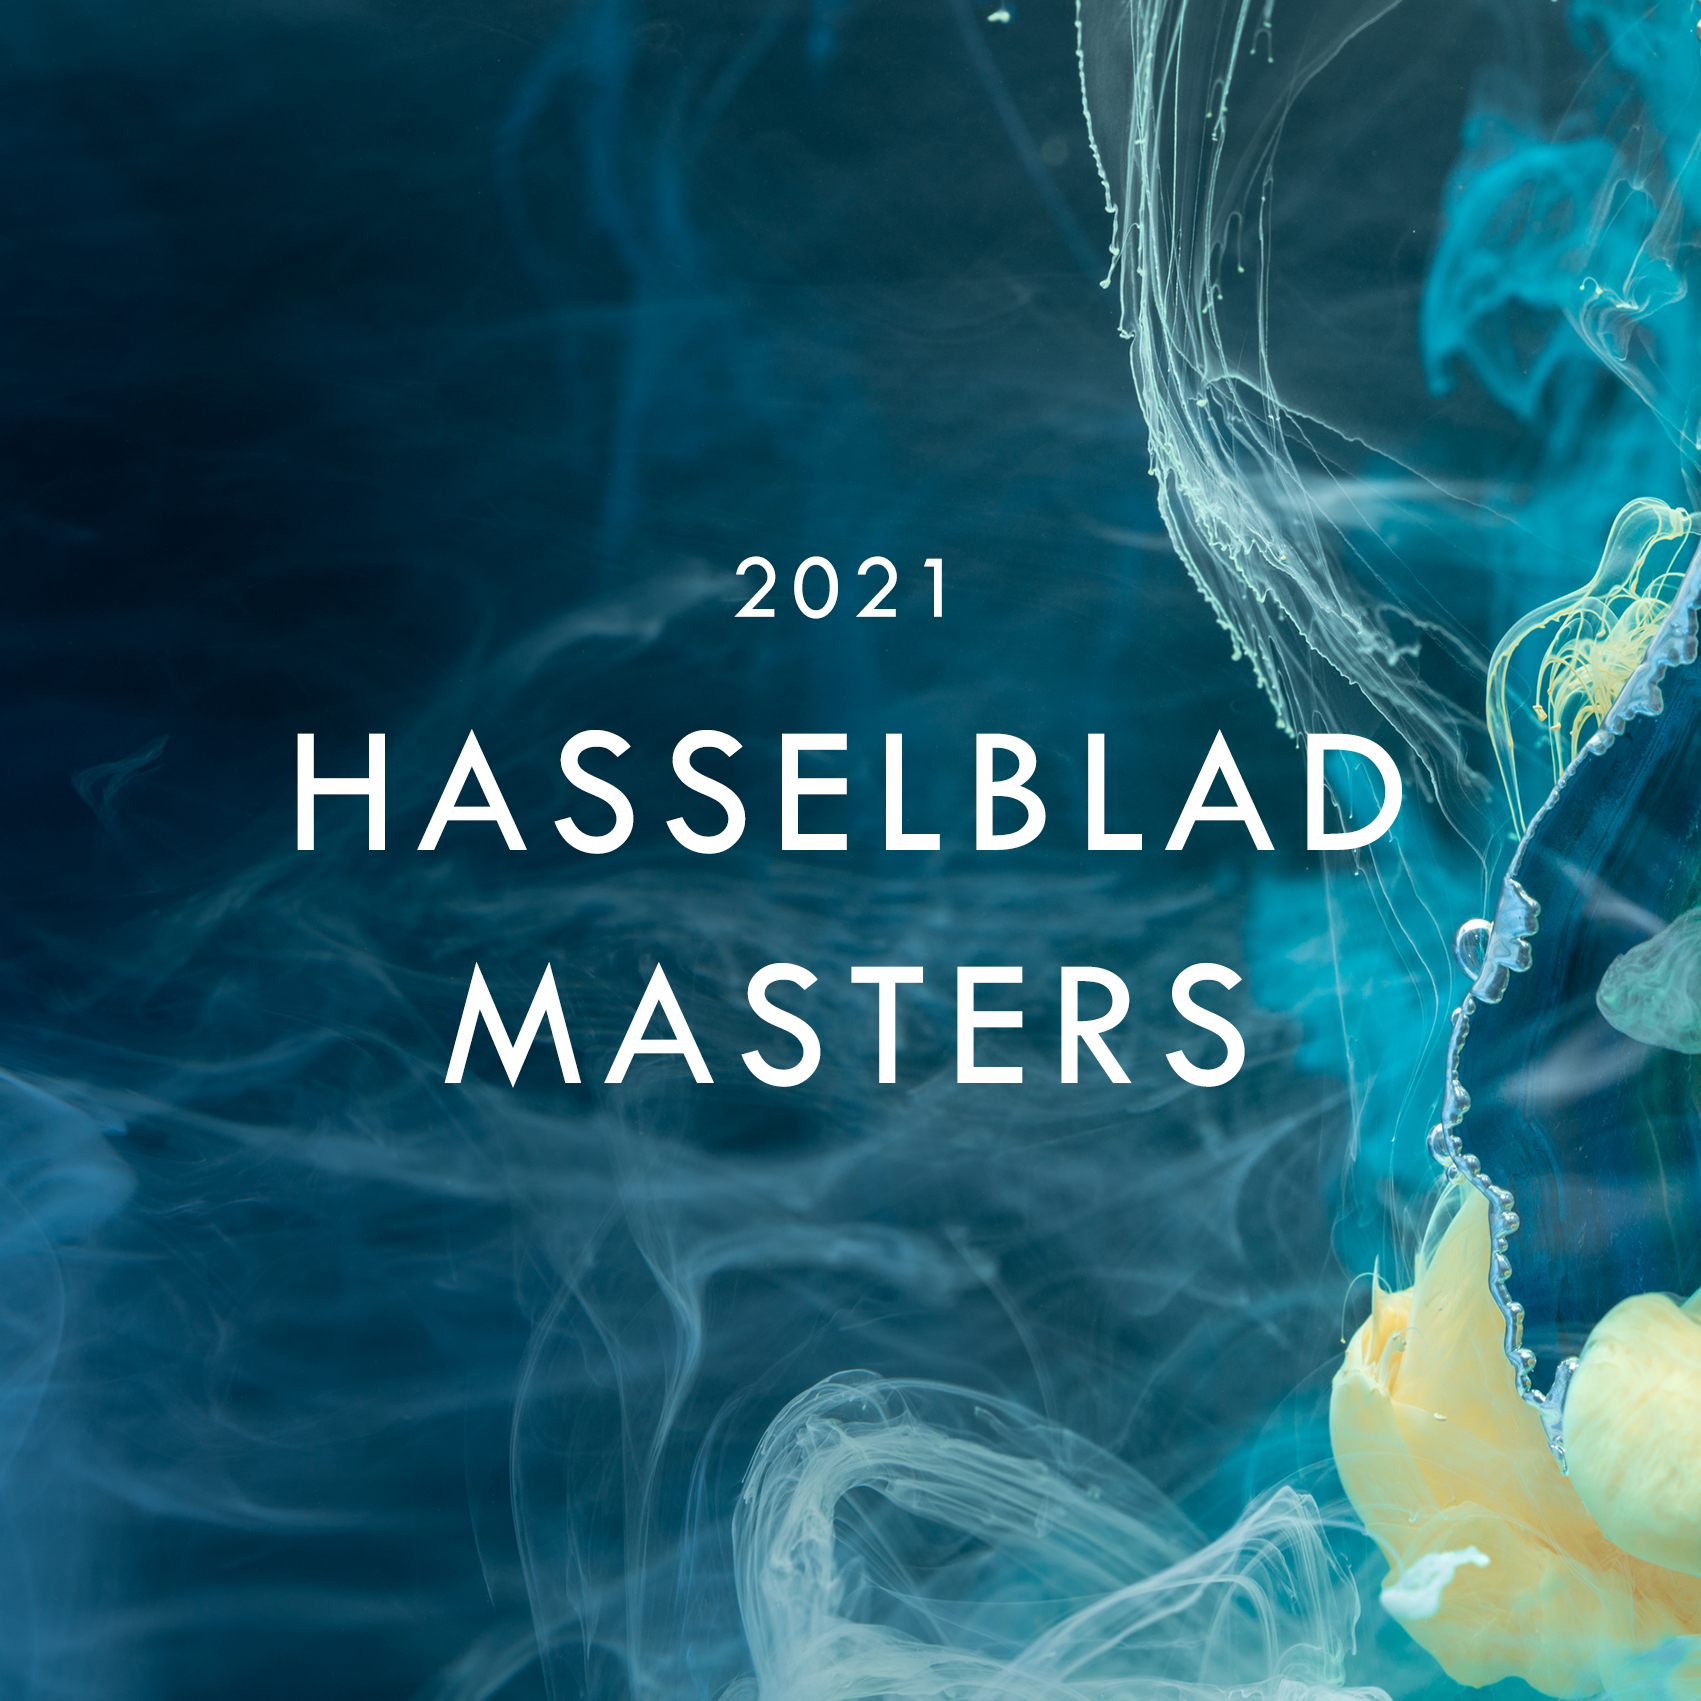 HASSELBLAD MASTERS 2021 COMPETITION NOW OPEN FOR ENTRIES